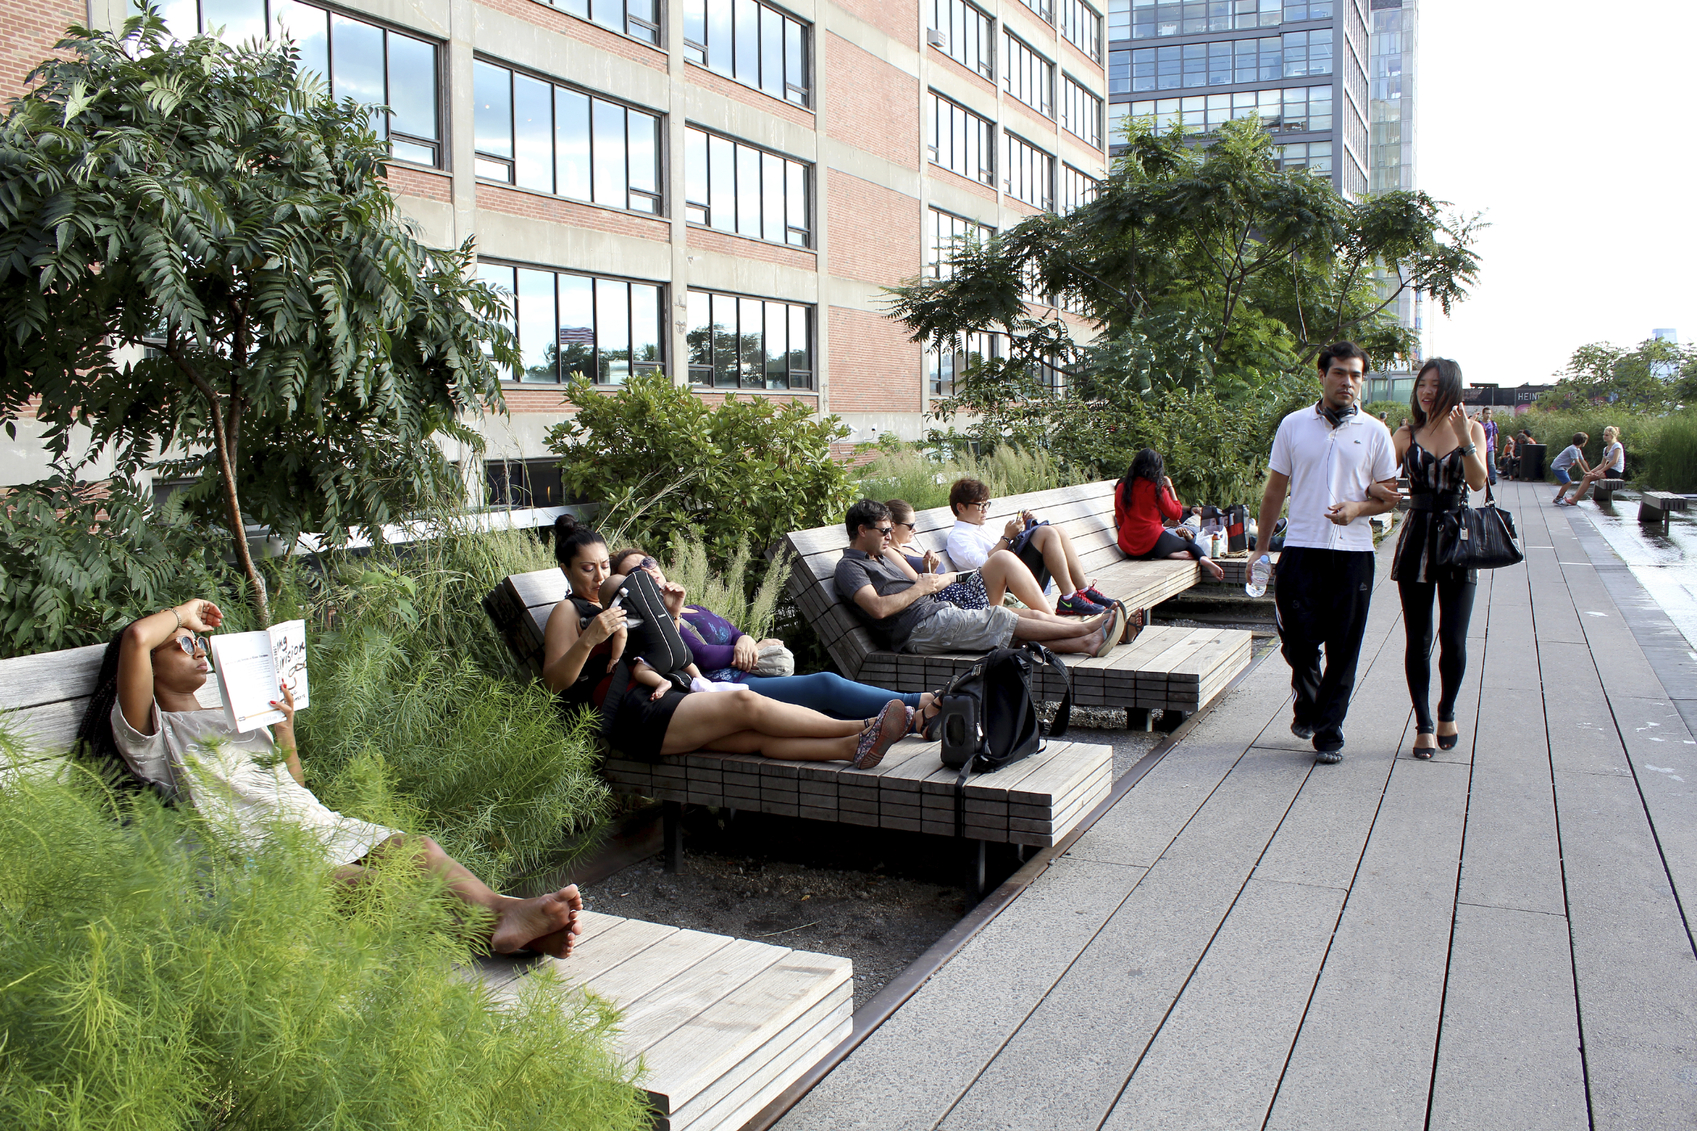 Explore The High Line Park This Summer